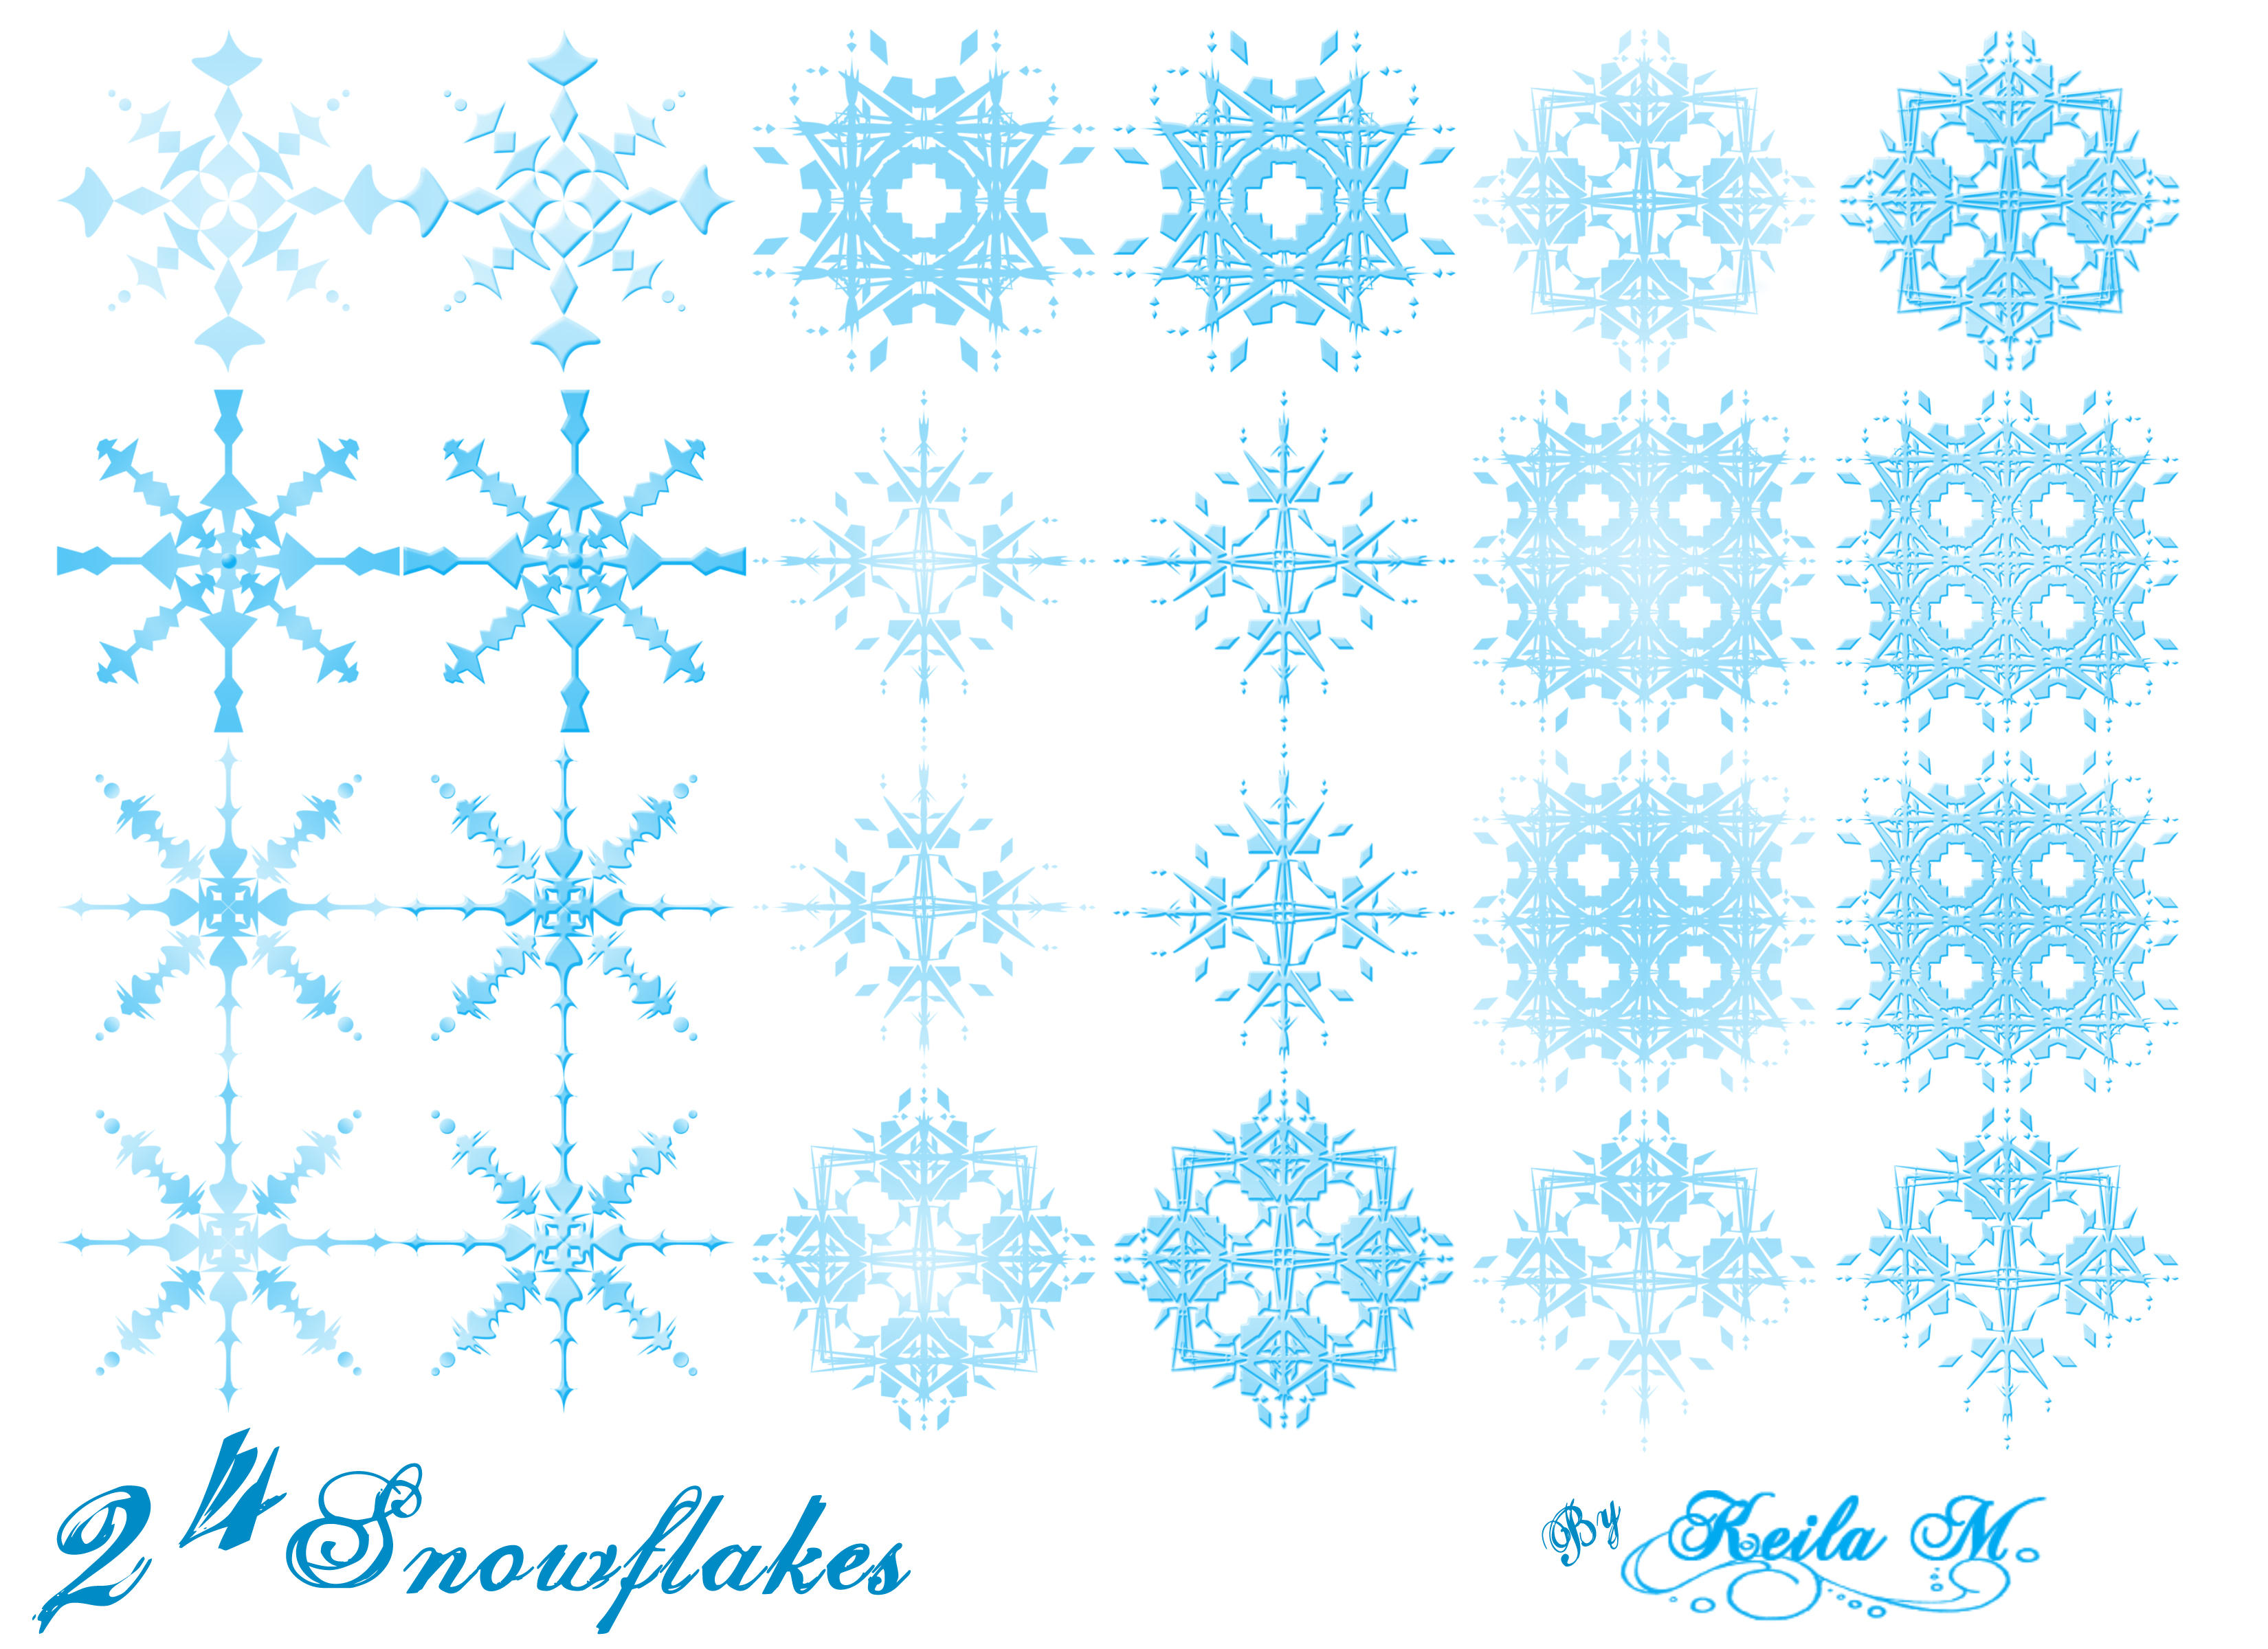 24 Snowflake Brushes by 0-oLaChischiso-0